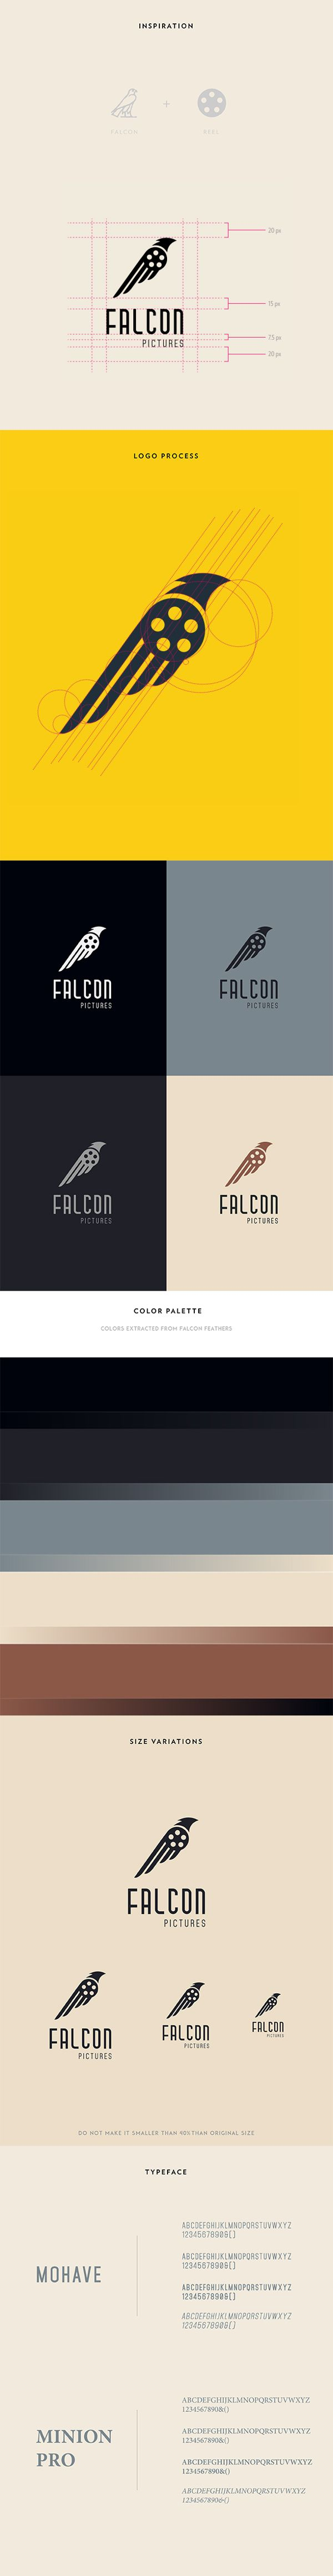 17 best ideas about logo design logos logo design falcon pictures logo design by grunz saint animal introducing moire studios a thriving website and graphic design studio feel to follow us